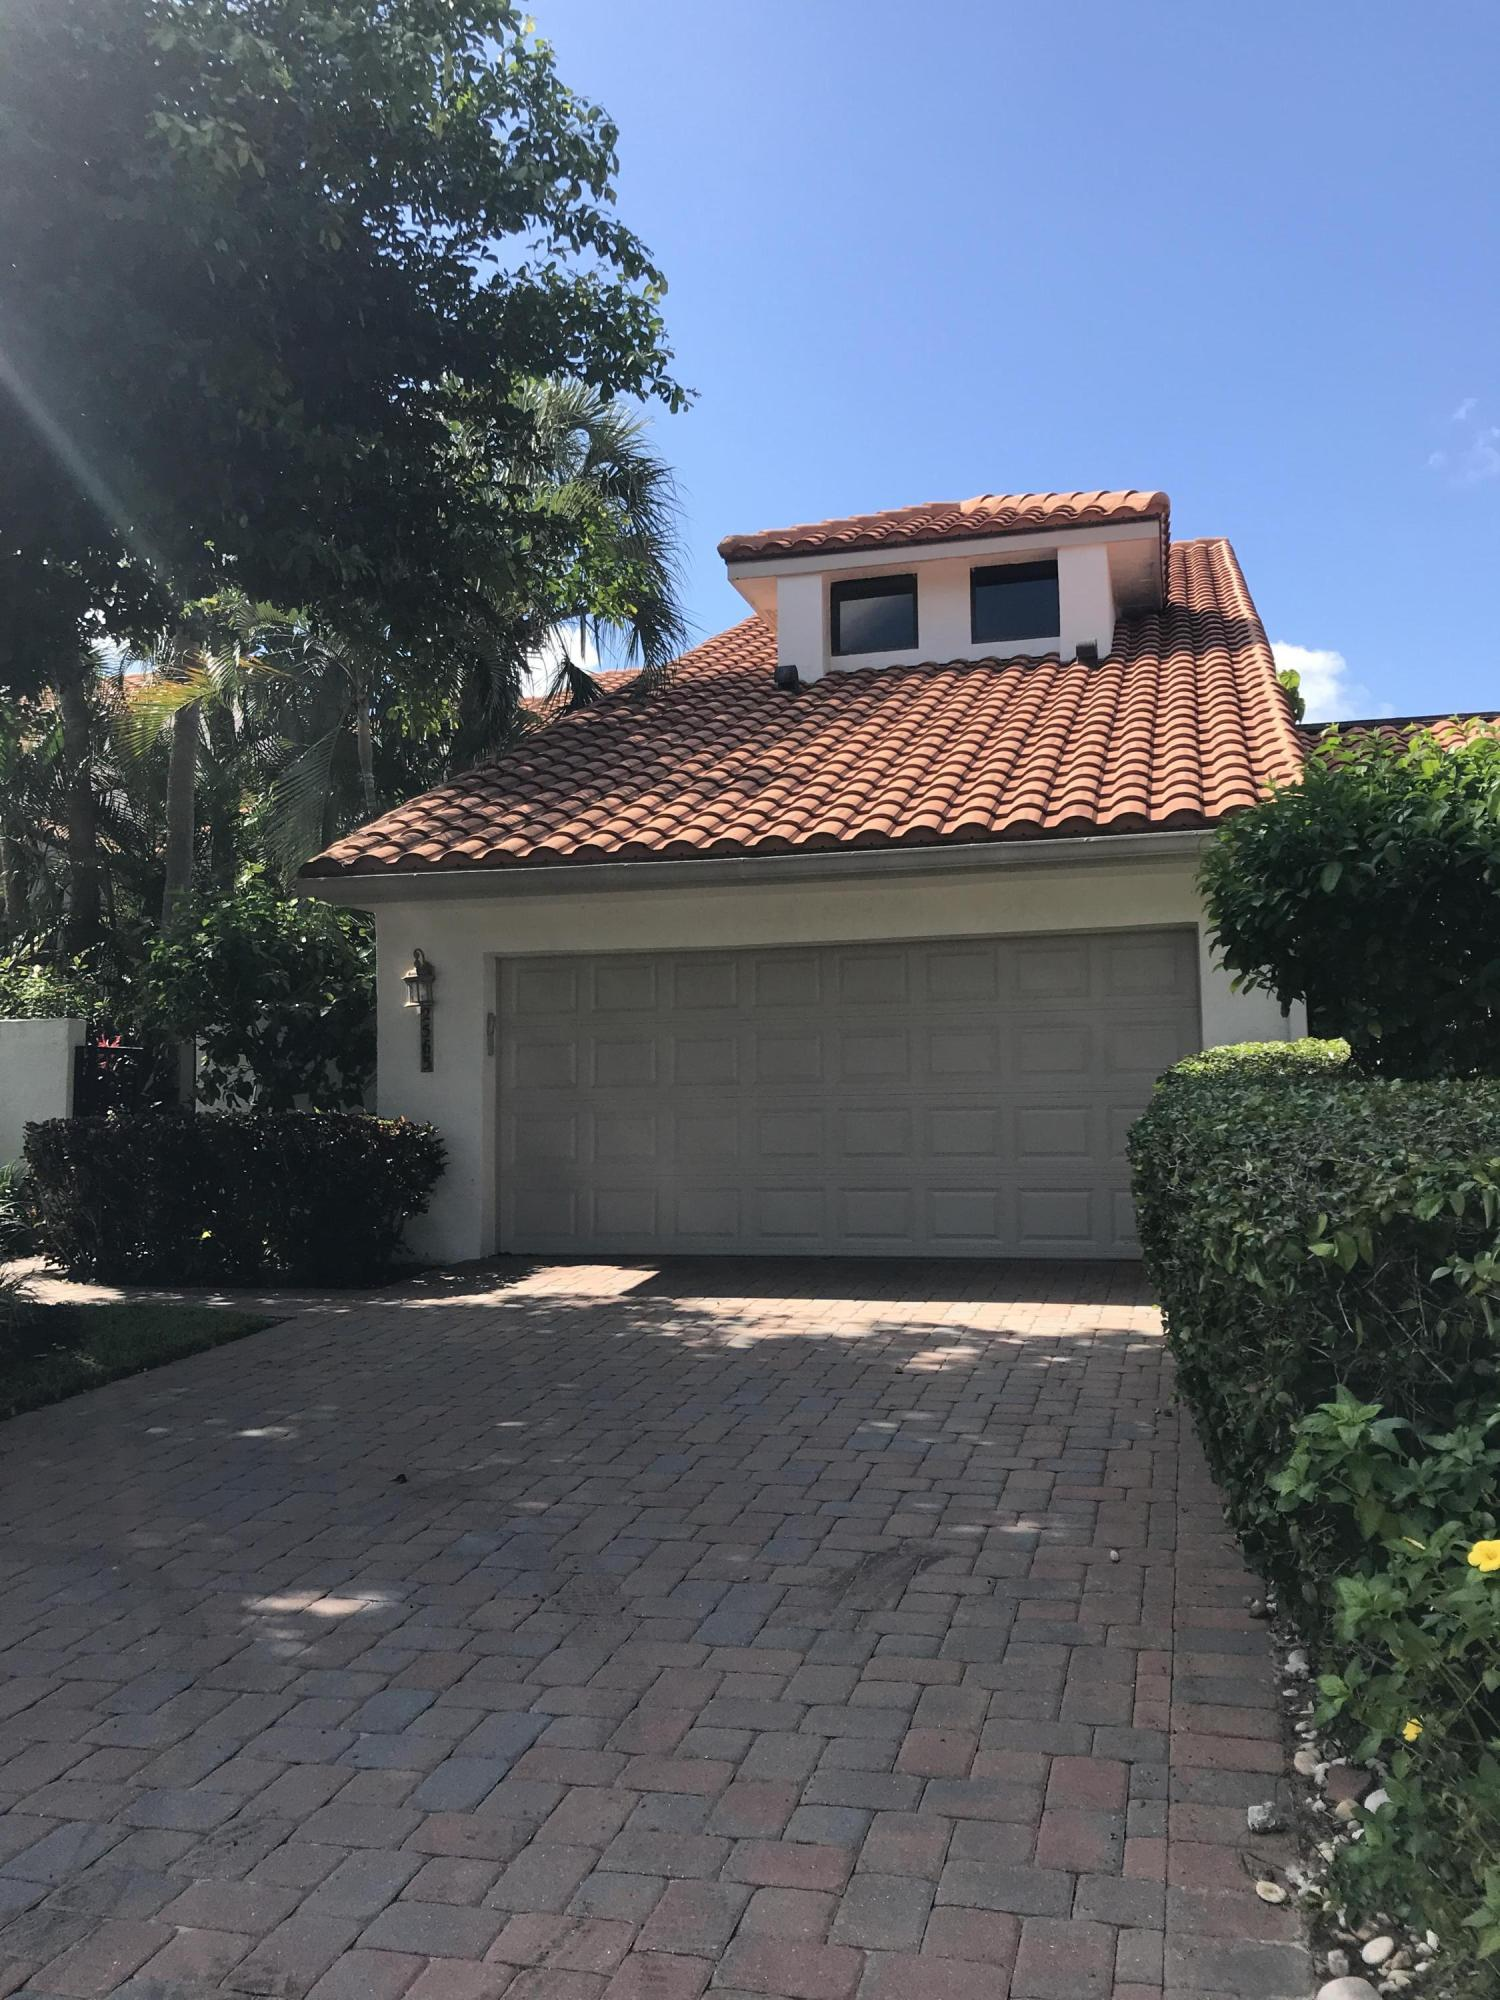 Well maintained, 3 bedroom 4 and a half baths, 2 car garage, pool townhome.  Spacious first floor master with his and her bathrooms. Guest bedrooms on second floor with separate bathrooms and a 8 x 12 den/ bonus room with closet that could be 4th bedroom for guest or child. 25 x 15 pool with large patio and lush landscaping for lots of privacy. Home is on a cul-de-sac, priced for any update''s that buyer may require. Property is located in a guard gated communnity,  Palm Beach Polo a Golf and country club community , membership to club and golf not mandatory. Close to all Wellington equestrian venues. Easy to show.